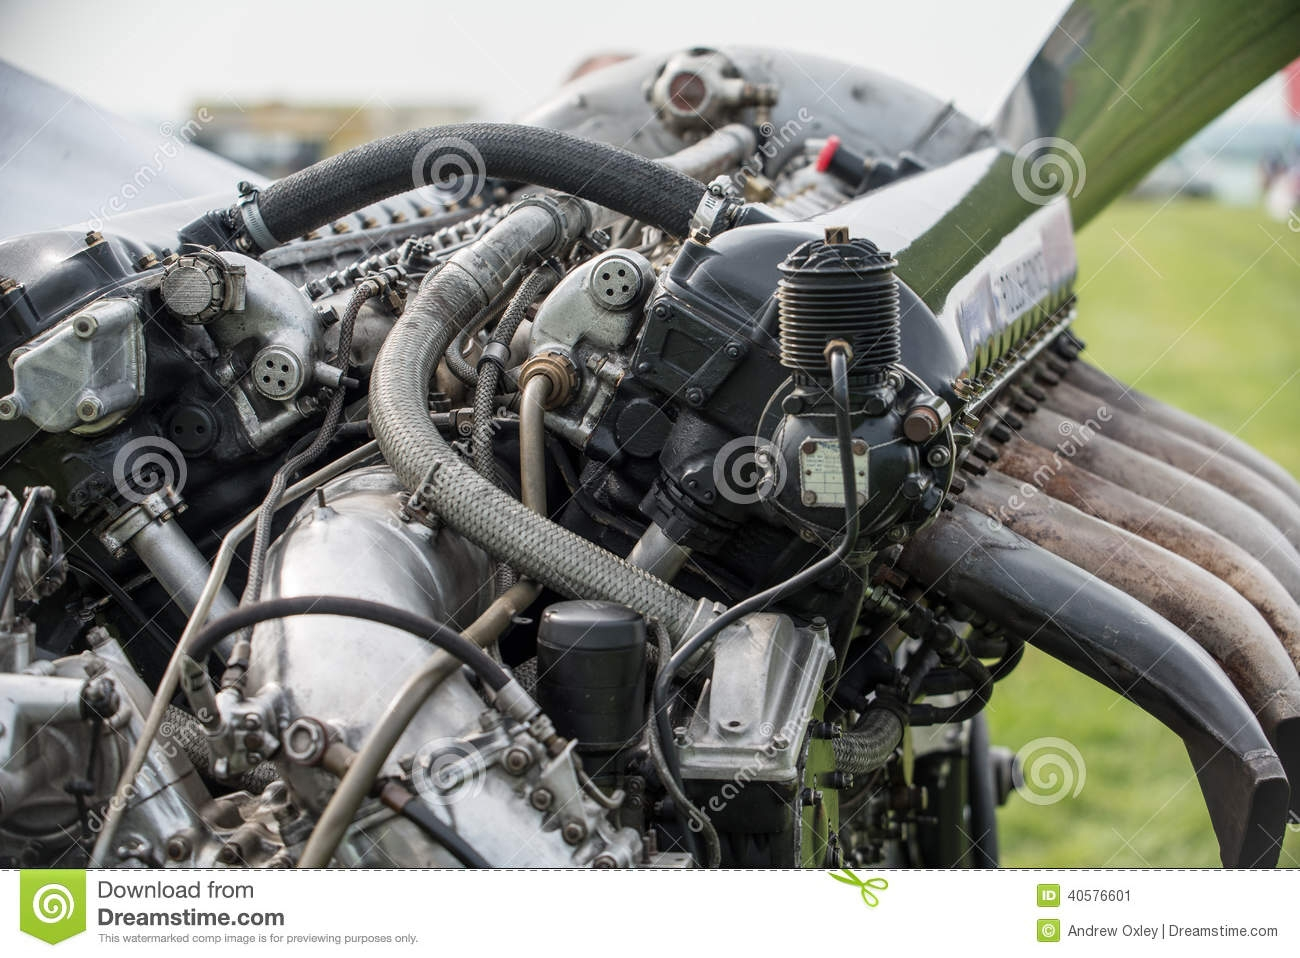 rolls-royce-merlin-aero-engine-v-litre-powerplant-numerous-world-war-aircraft-renowned-british-spitfire-fighter-amongst-40576601.jpg